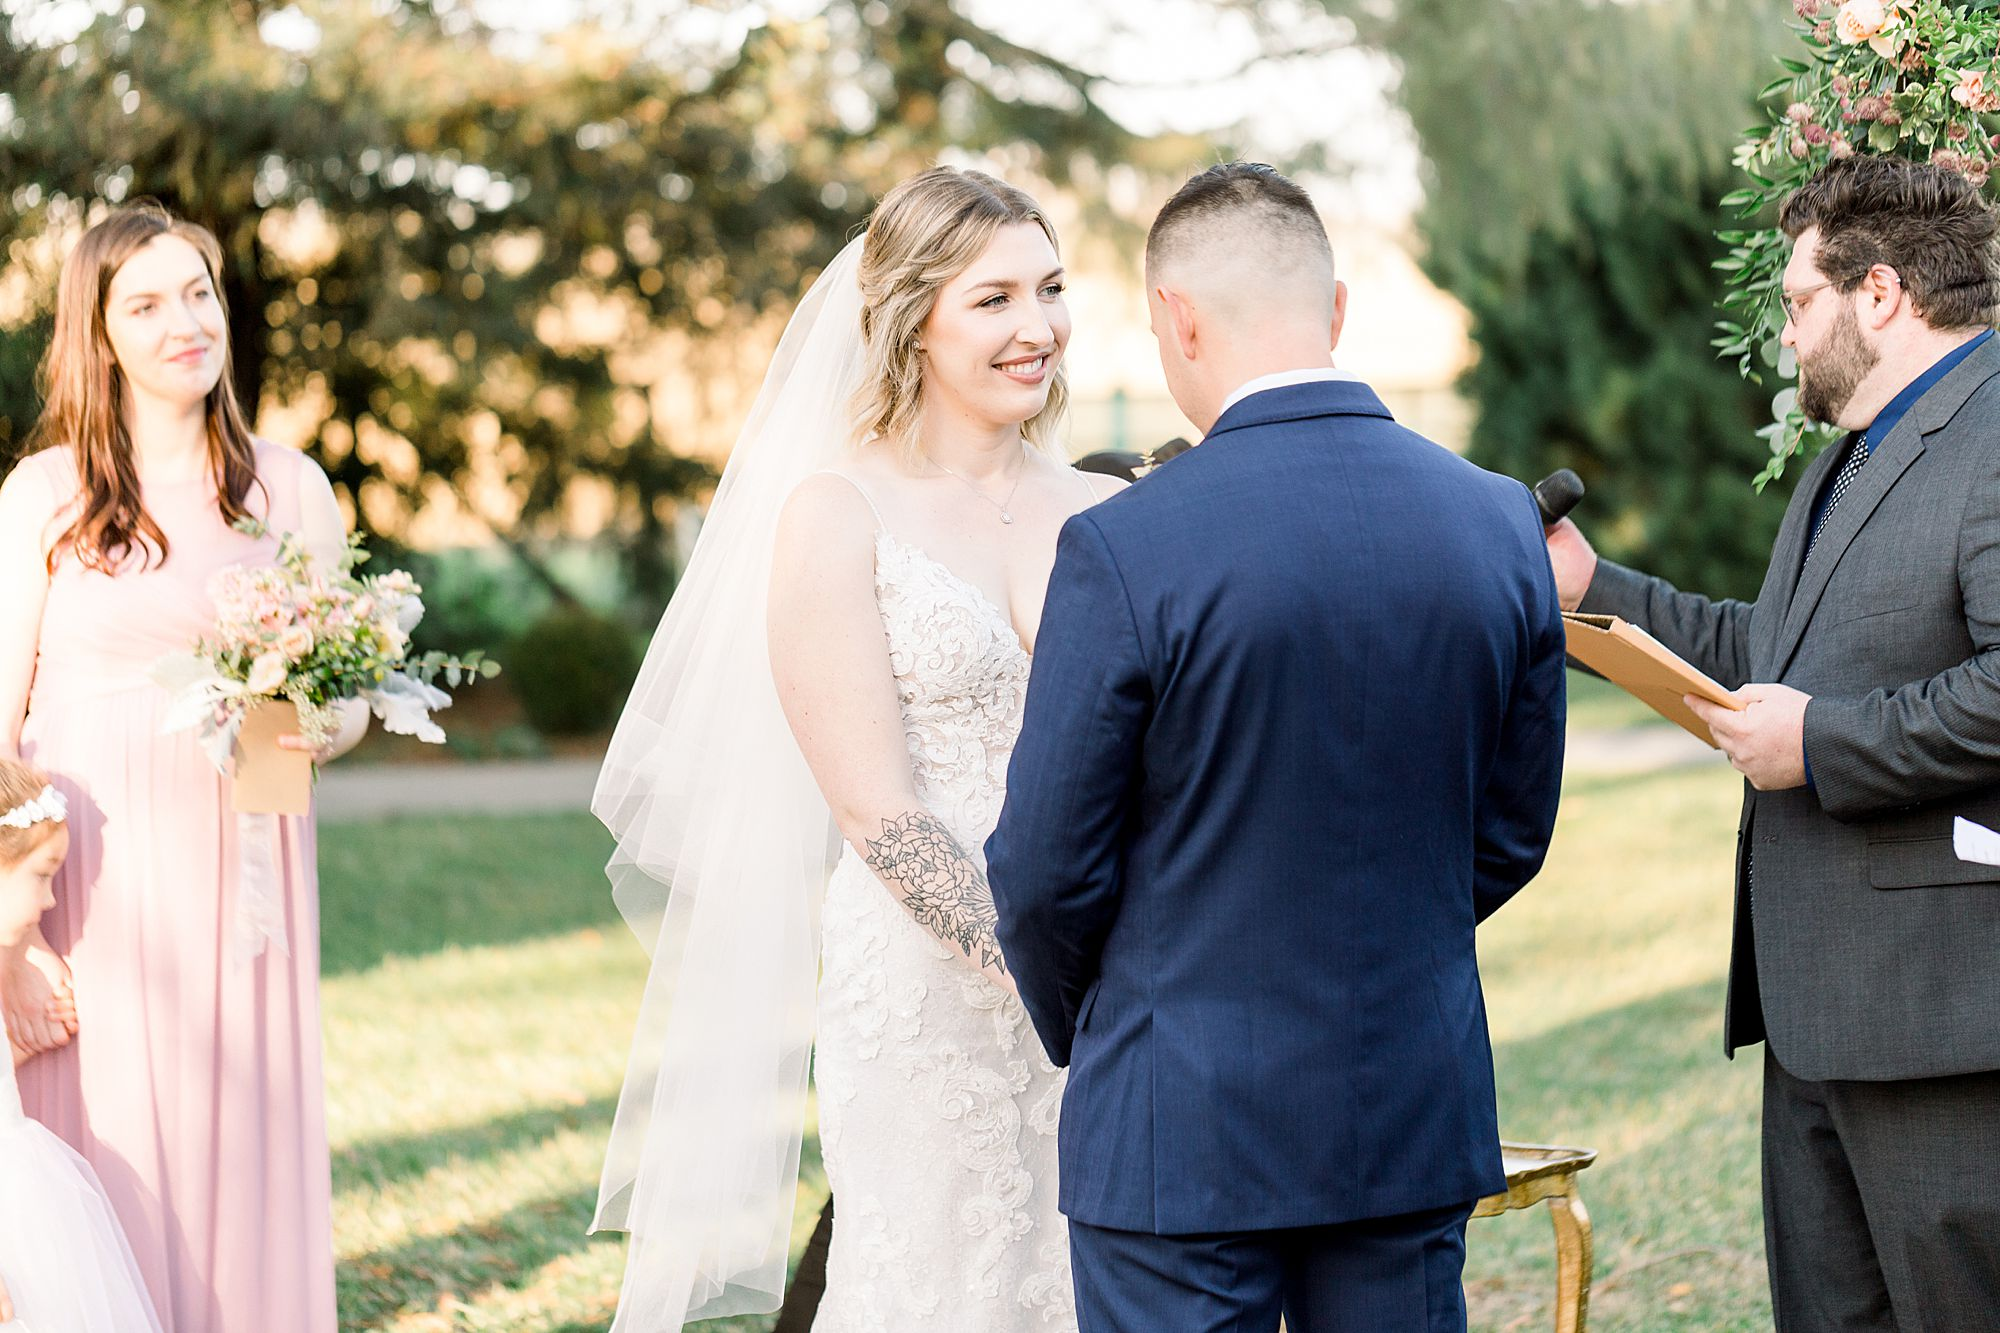 Inn at Park Winters Wedding - Lindsay and Shane - Ashley Baumgartner - Park Winters Wedding Photographer - Sacramento Wedding Photographer_0055.jpg